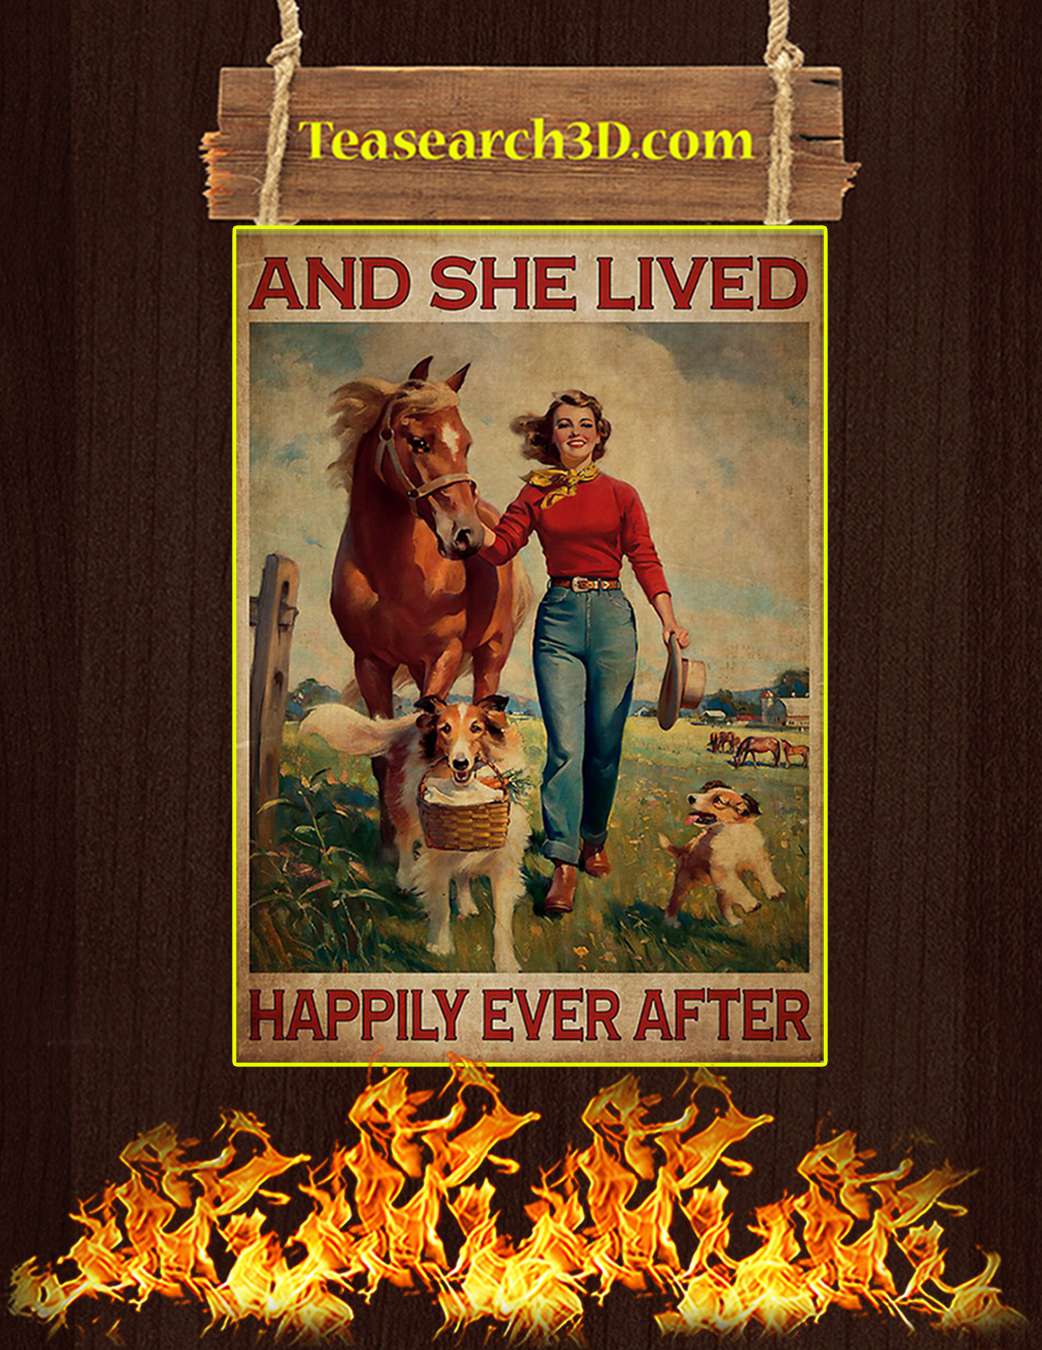 Girl with horse and dogs lived happily ever after poster A1